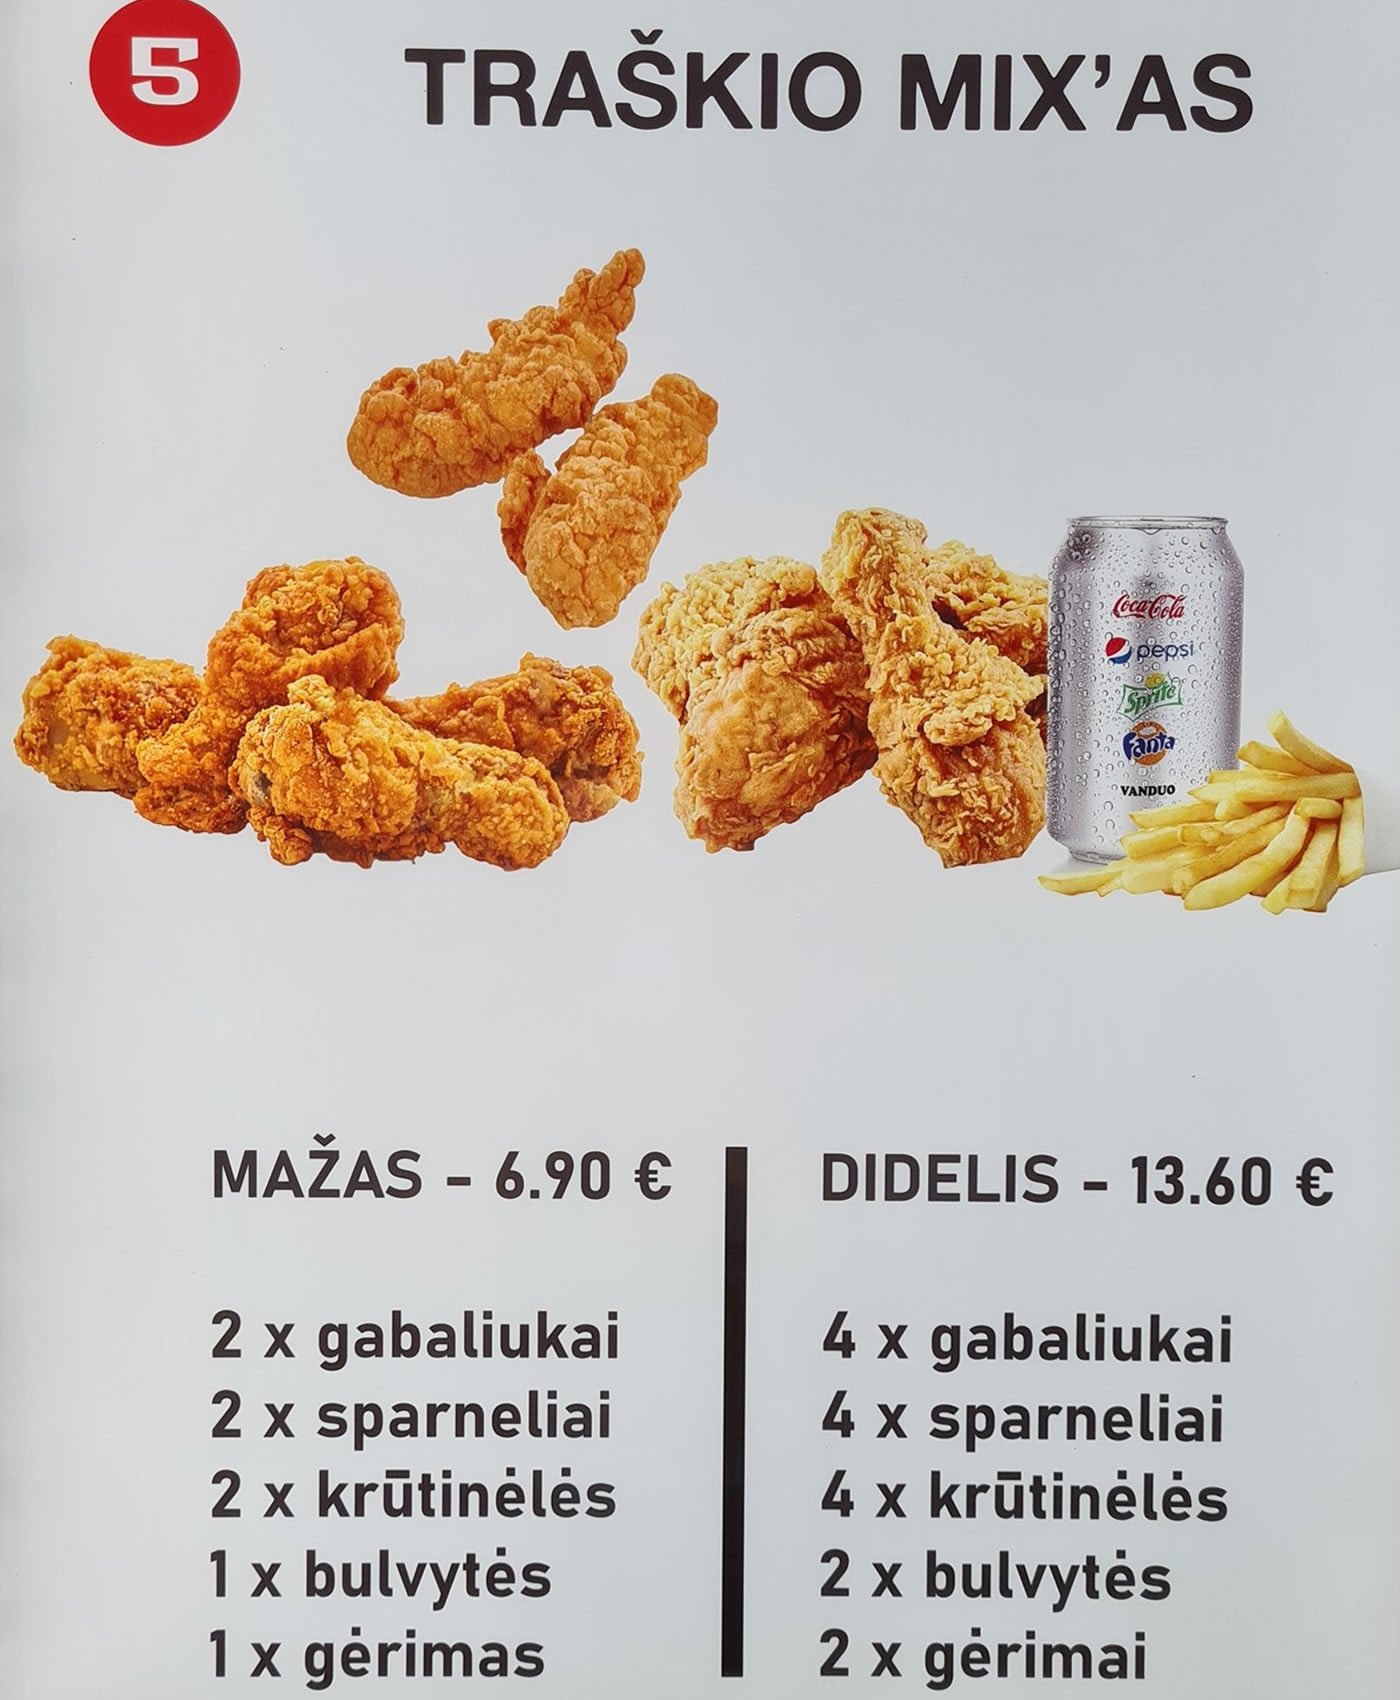 Traškio Mix'as